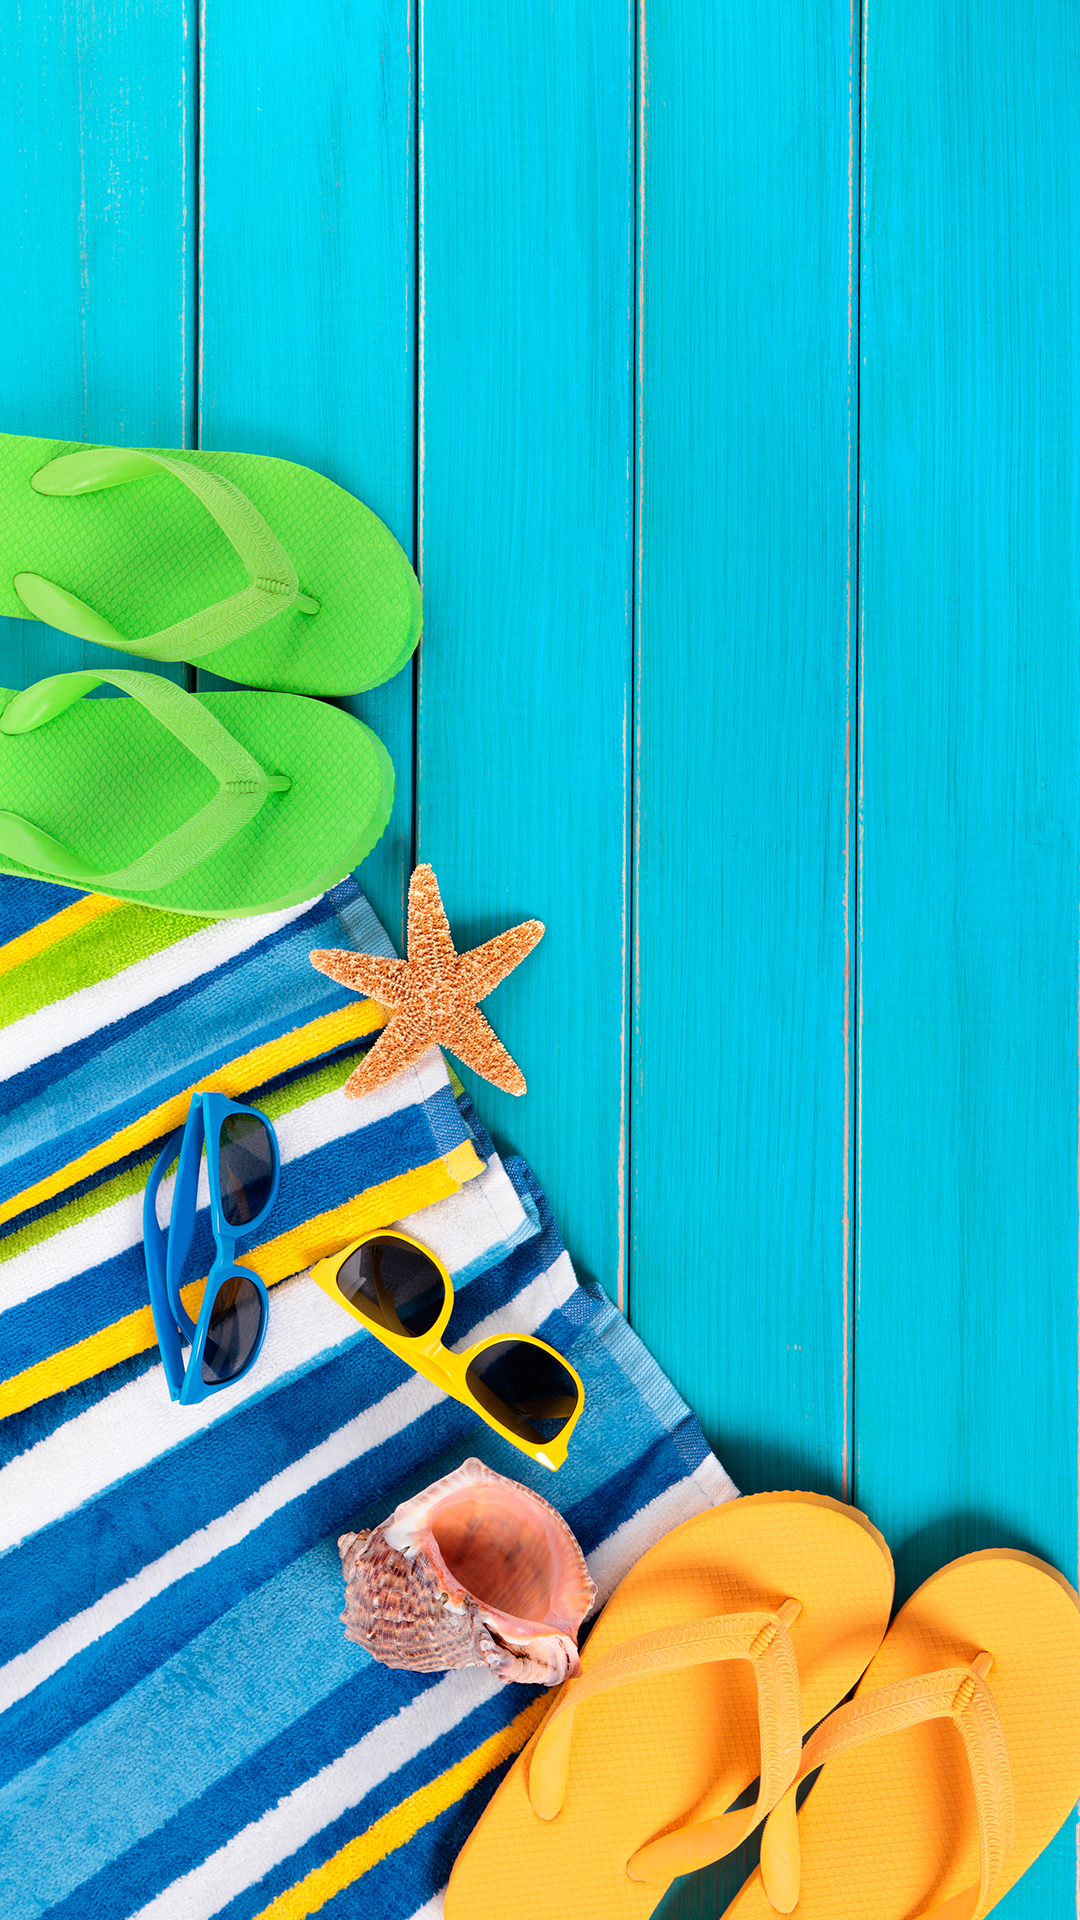 Hd Wallpaper Dimensions Beach Stuff Hd Wallpaper For Your Mobile Phone